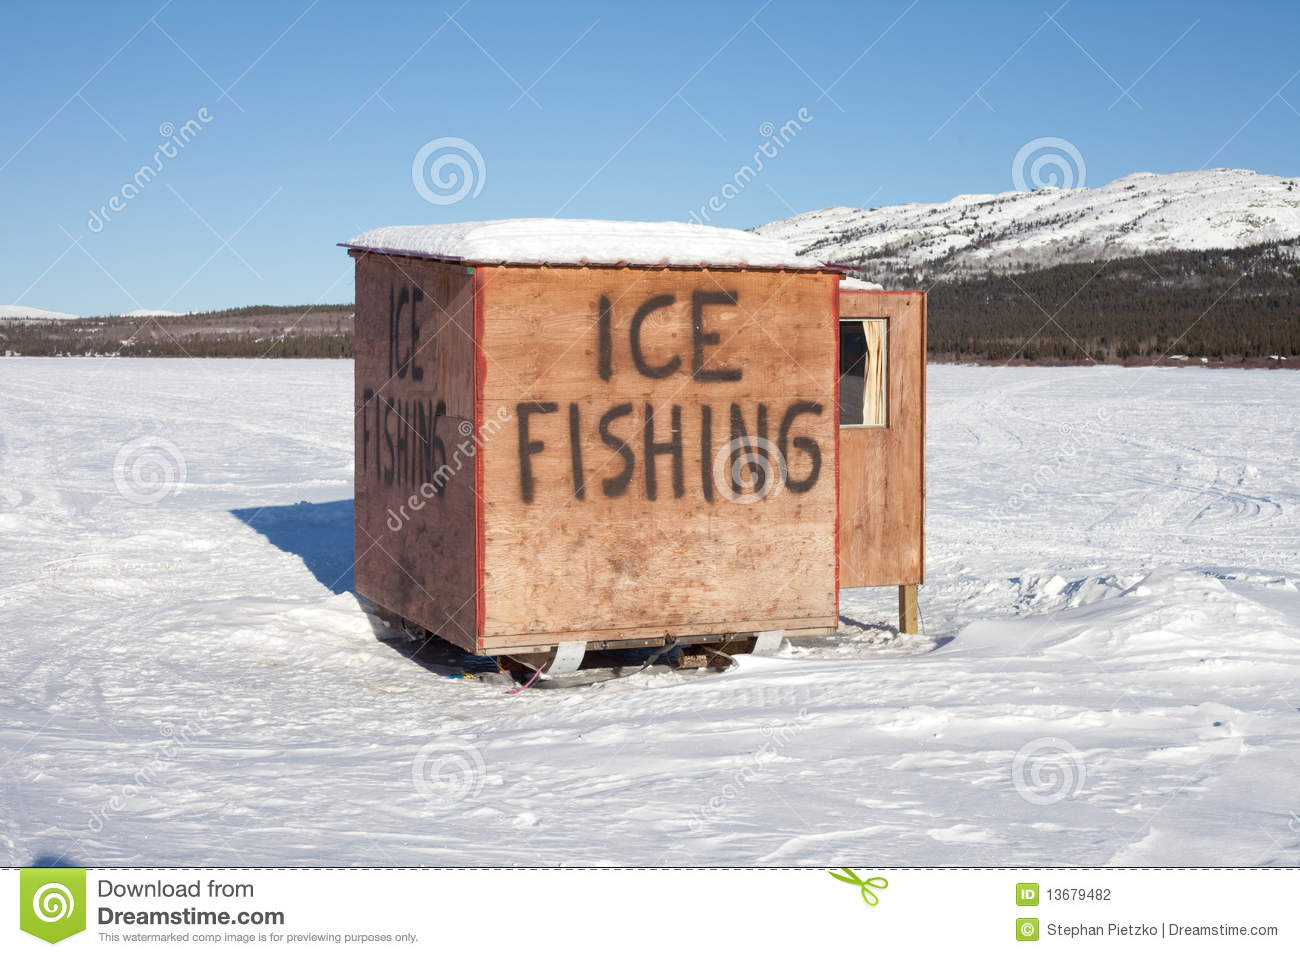 Ice Fishing Shack Stock Photos, Images, & Pictures.